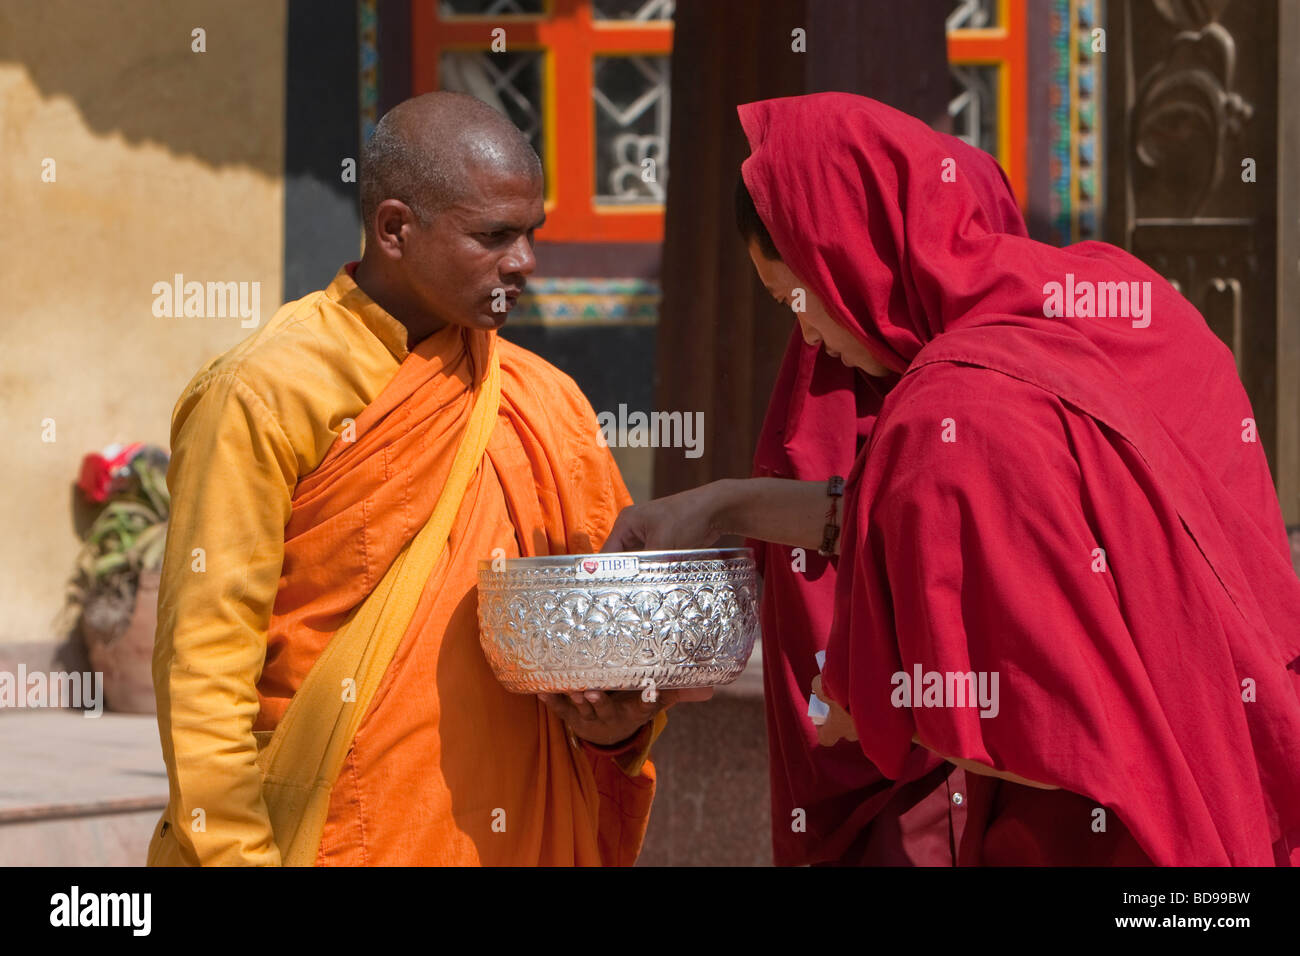 Bodhnath, Nepal.  A Buddhist Monk Receives an Offering from a Tibetan Monk in front of the Tamang Gompa (Monastery). - Stock Image